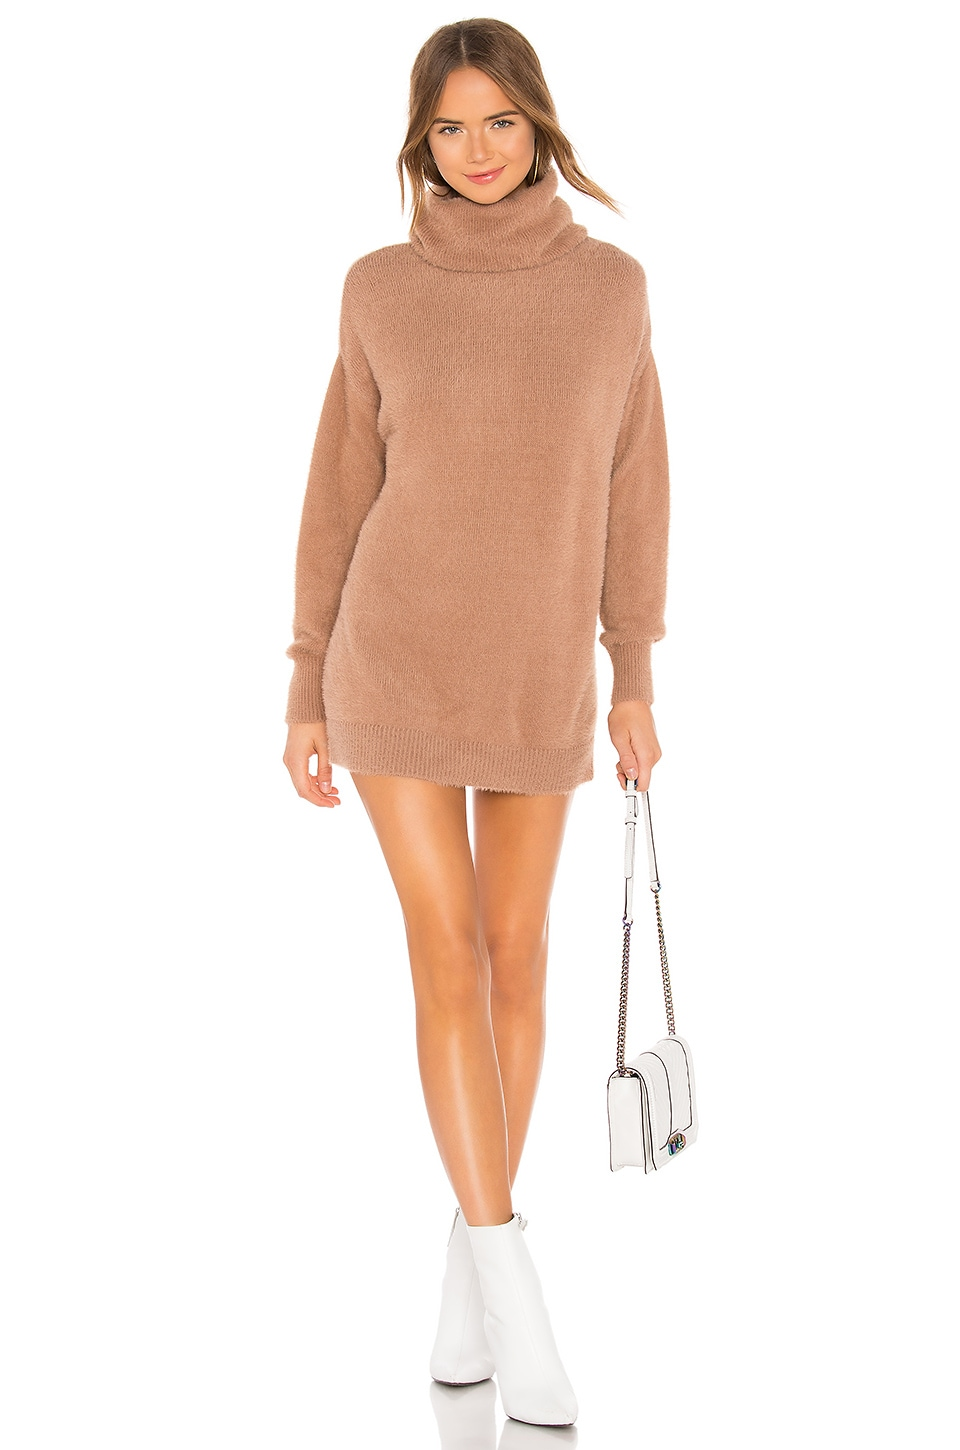 Tularosa Webster Pullover in Camel